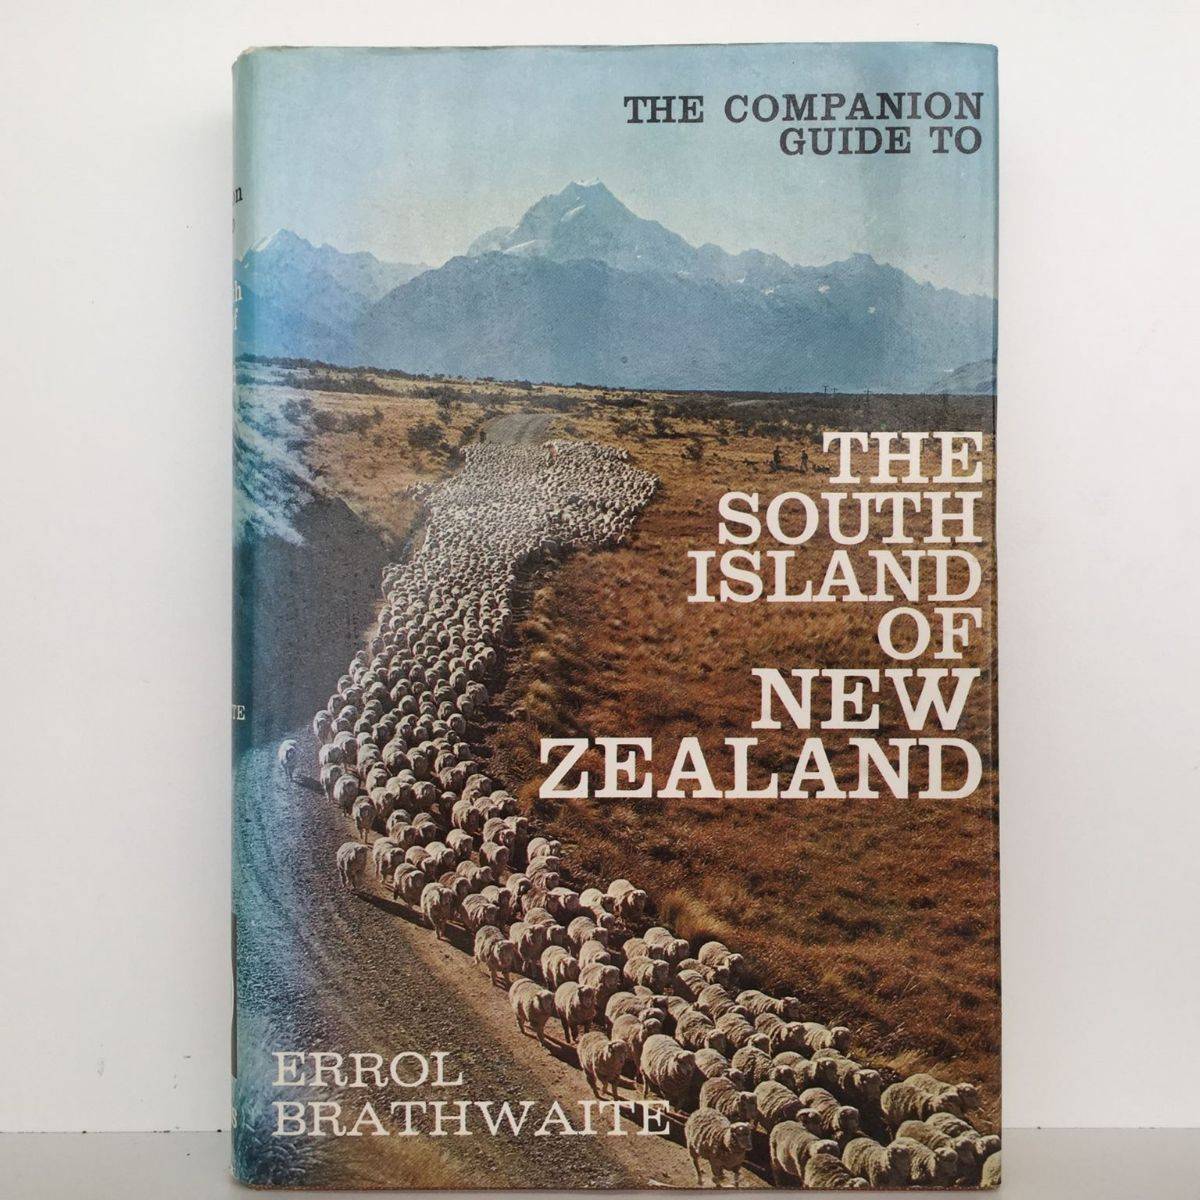 The Companion Guide to The South Island of New Zealand